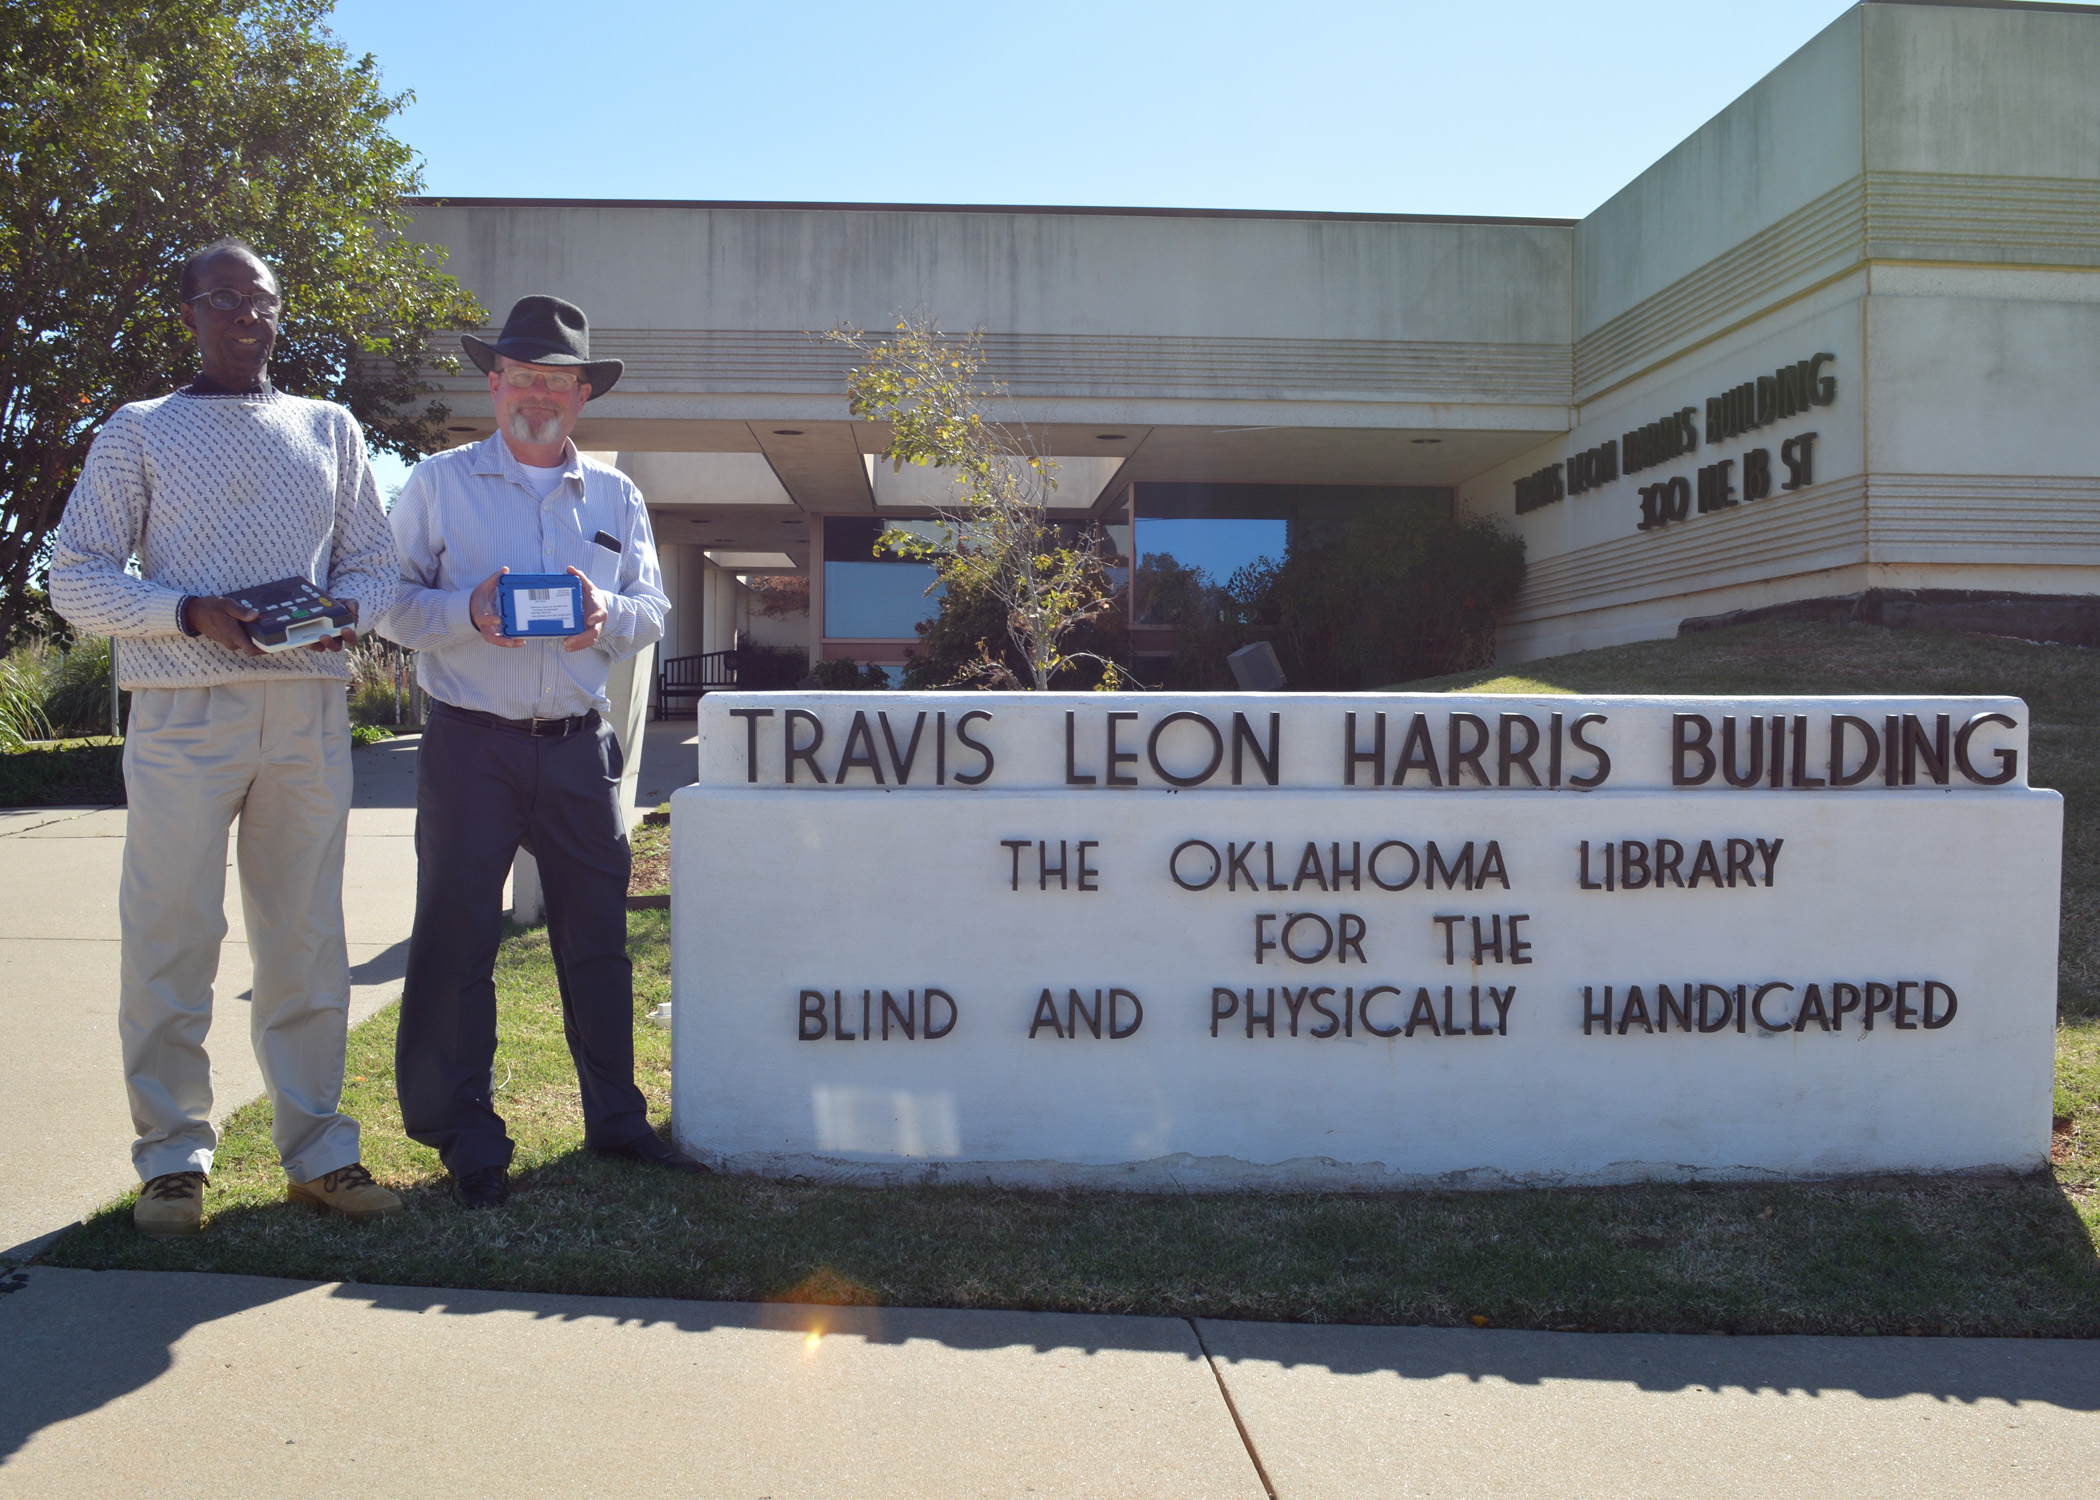 Two men stand in front of a building with a sign Travis Leon Harris Building The Oklahoma Library for the Blind and Physically Handicapped